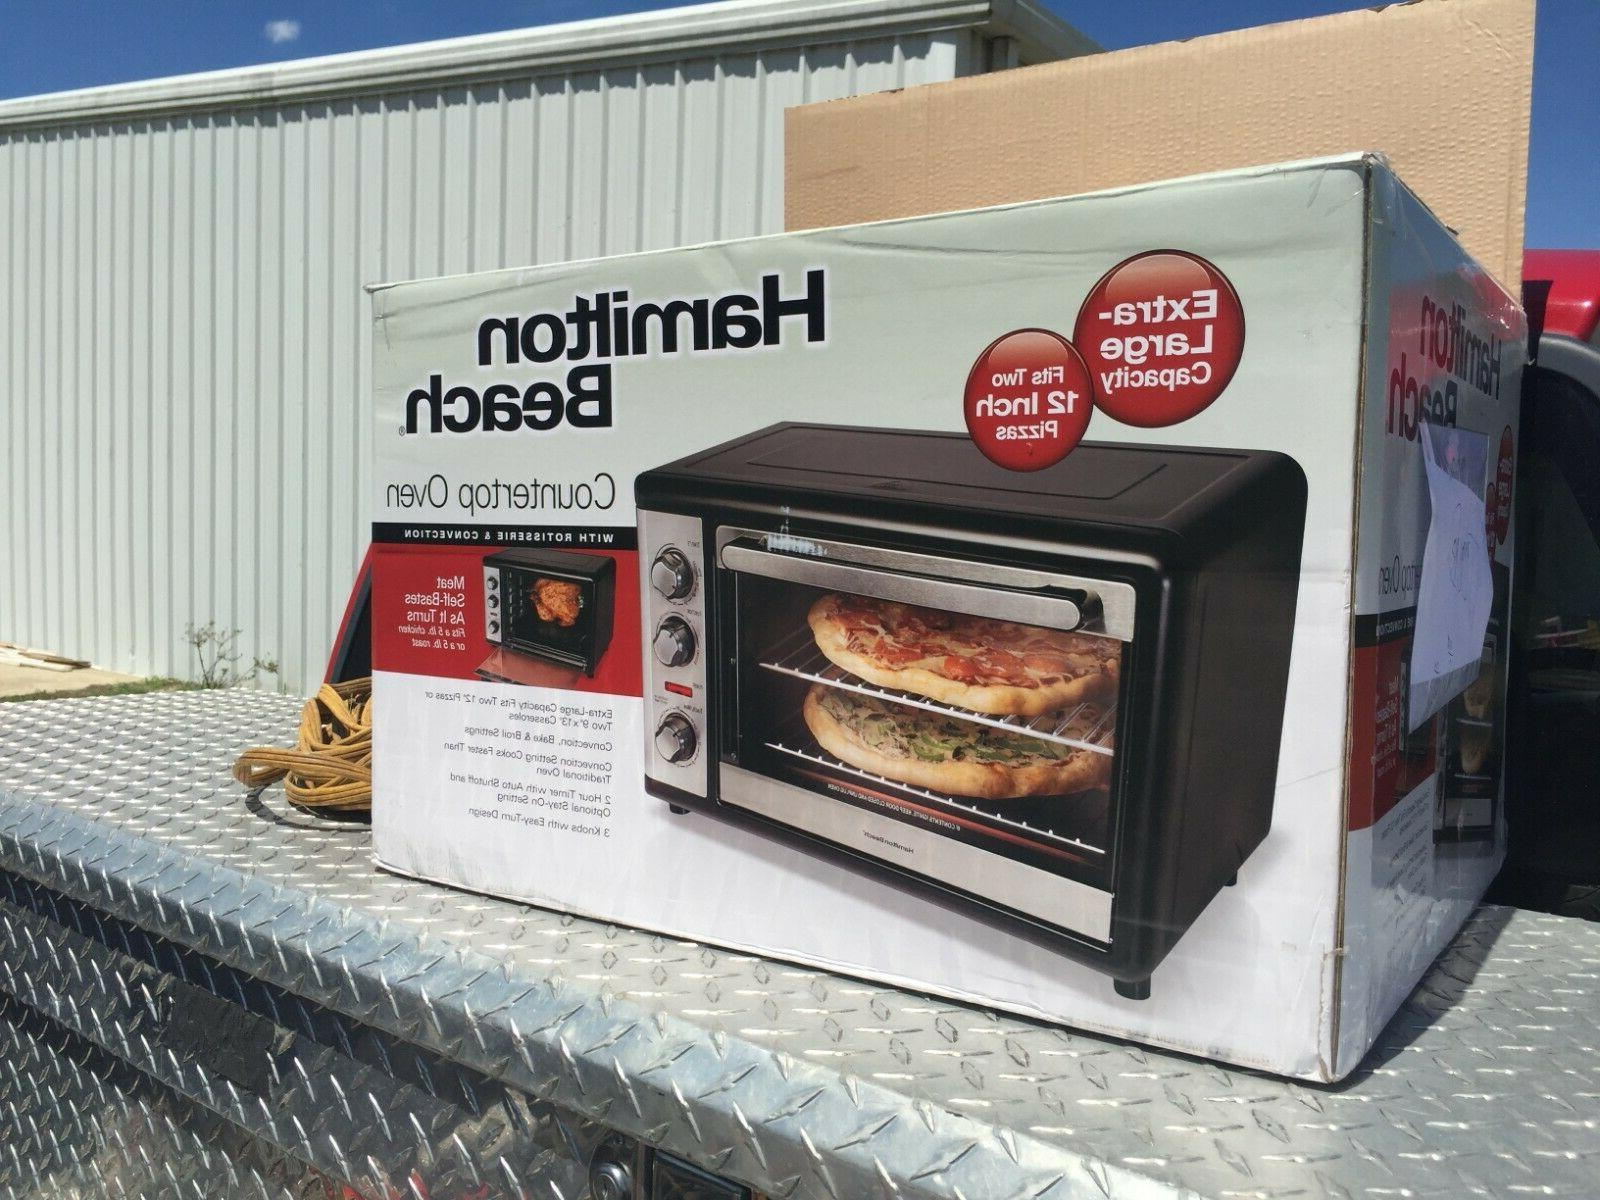 new countertop oven with rotisserie and convection